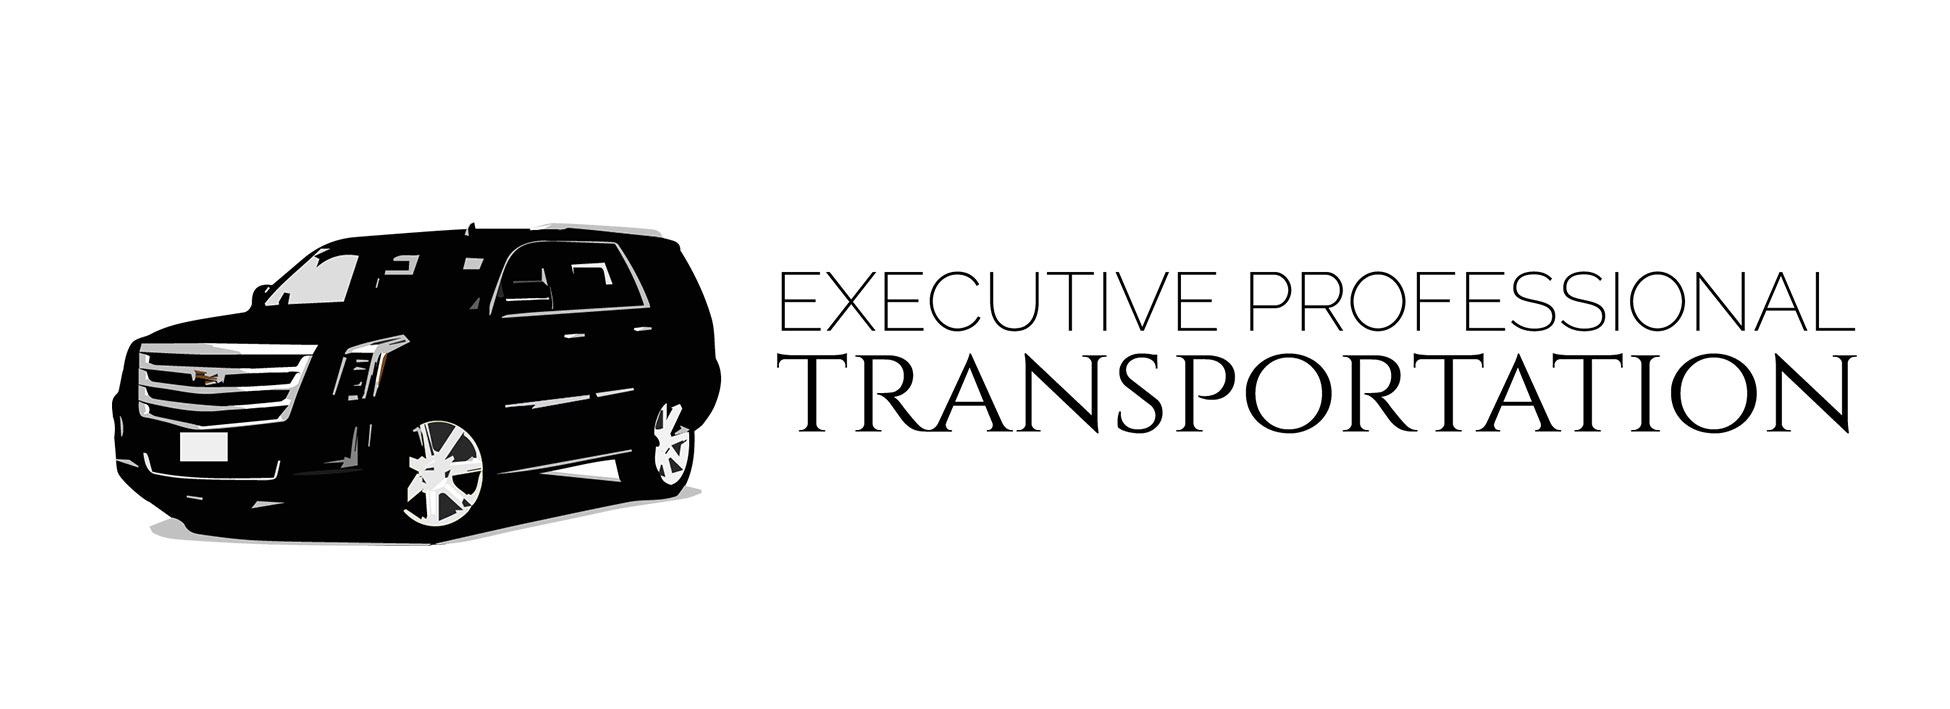 executive professional transportation town car suv private